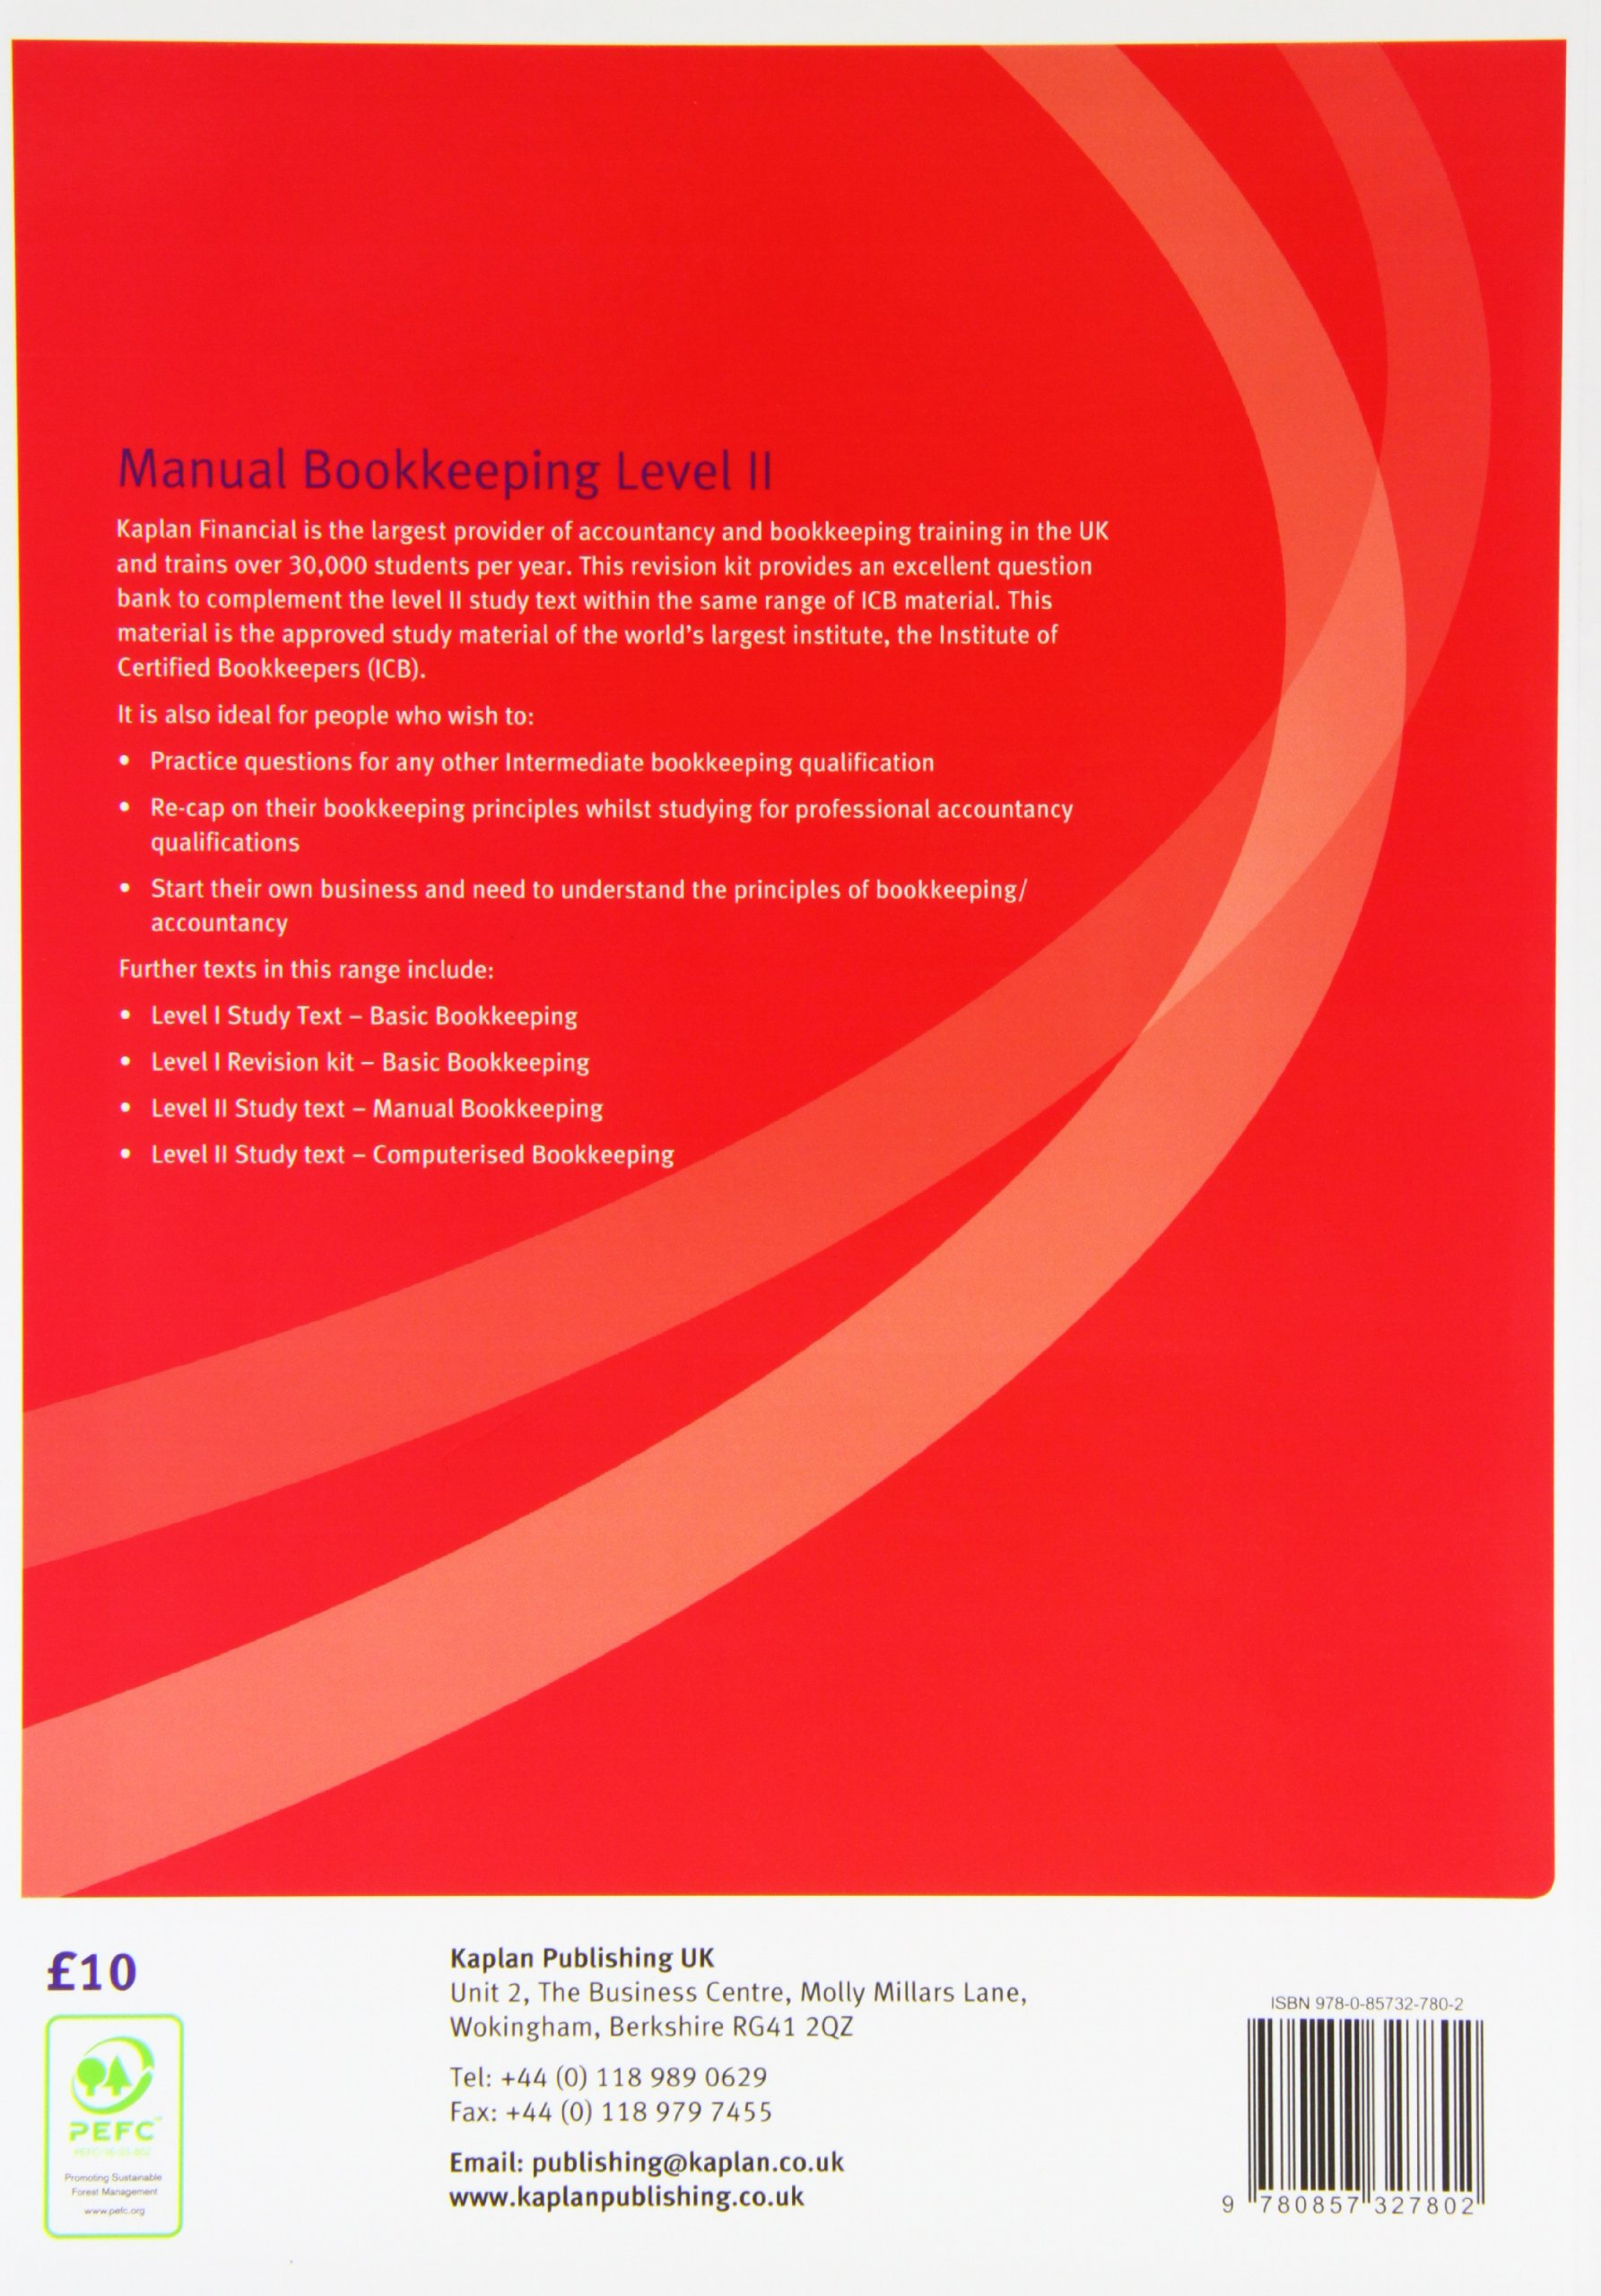 Level II Certificate in Manual Bookkeeping - Kit: Level II (Icb Bookkeeping  Materials): Amazon.co.uk: Icb: 9780857327802: Books